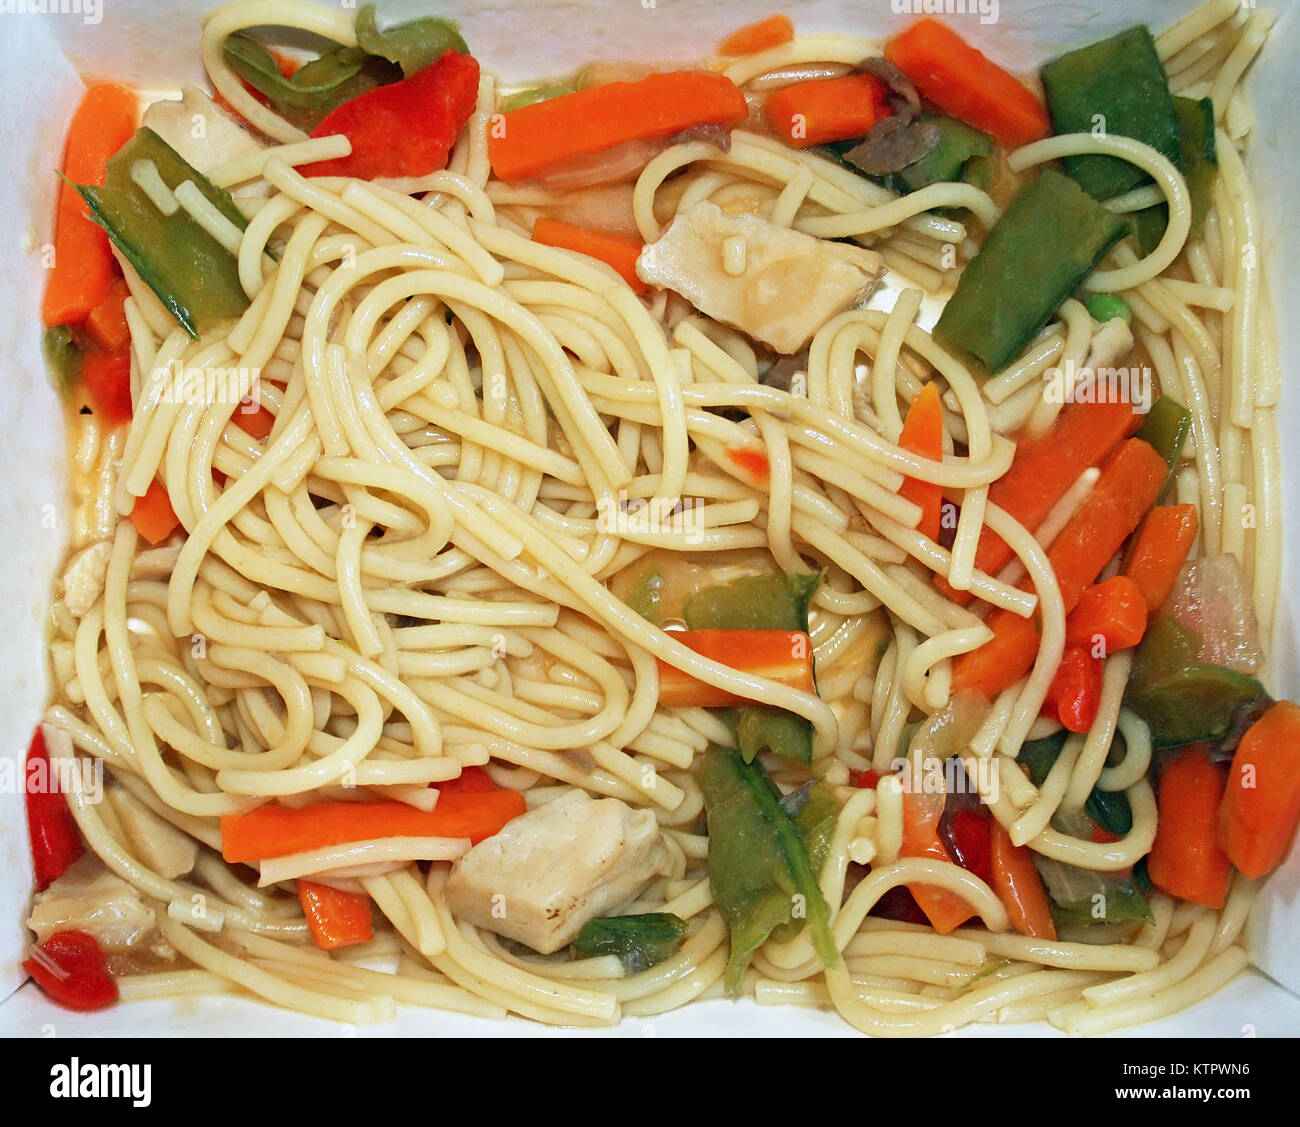 Cardboard container of noodles and vegetables that has been microwaved Stock Photo